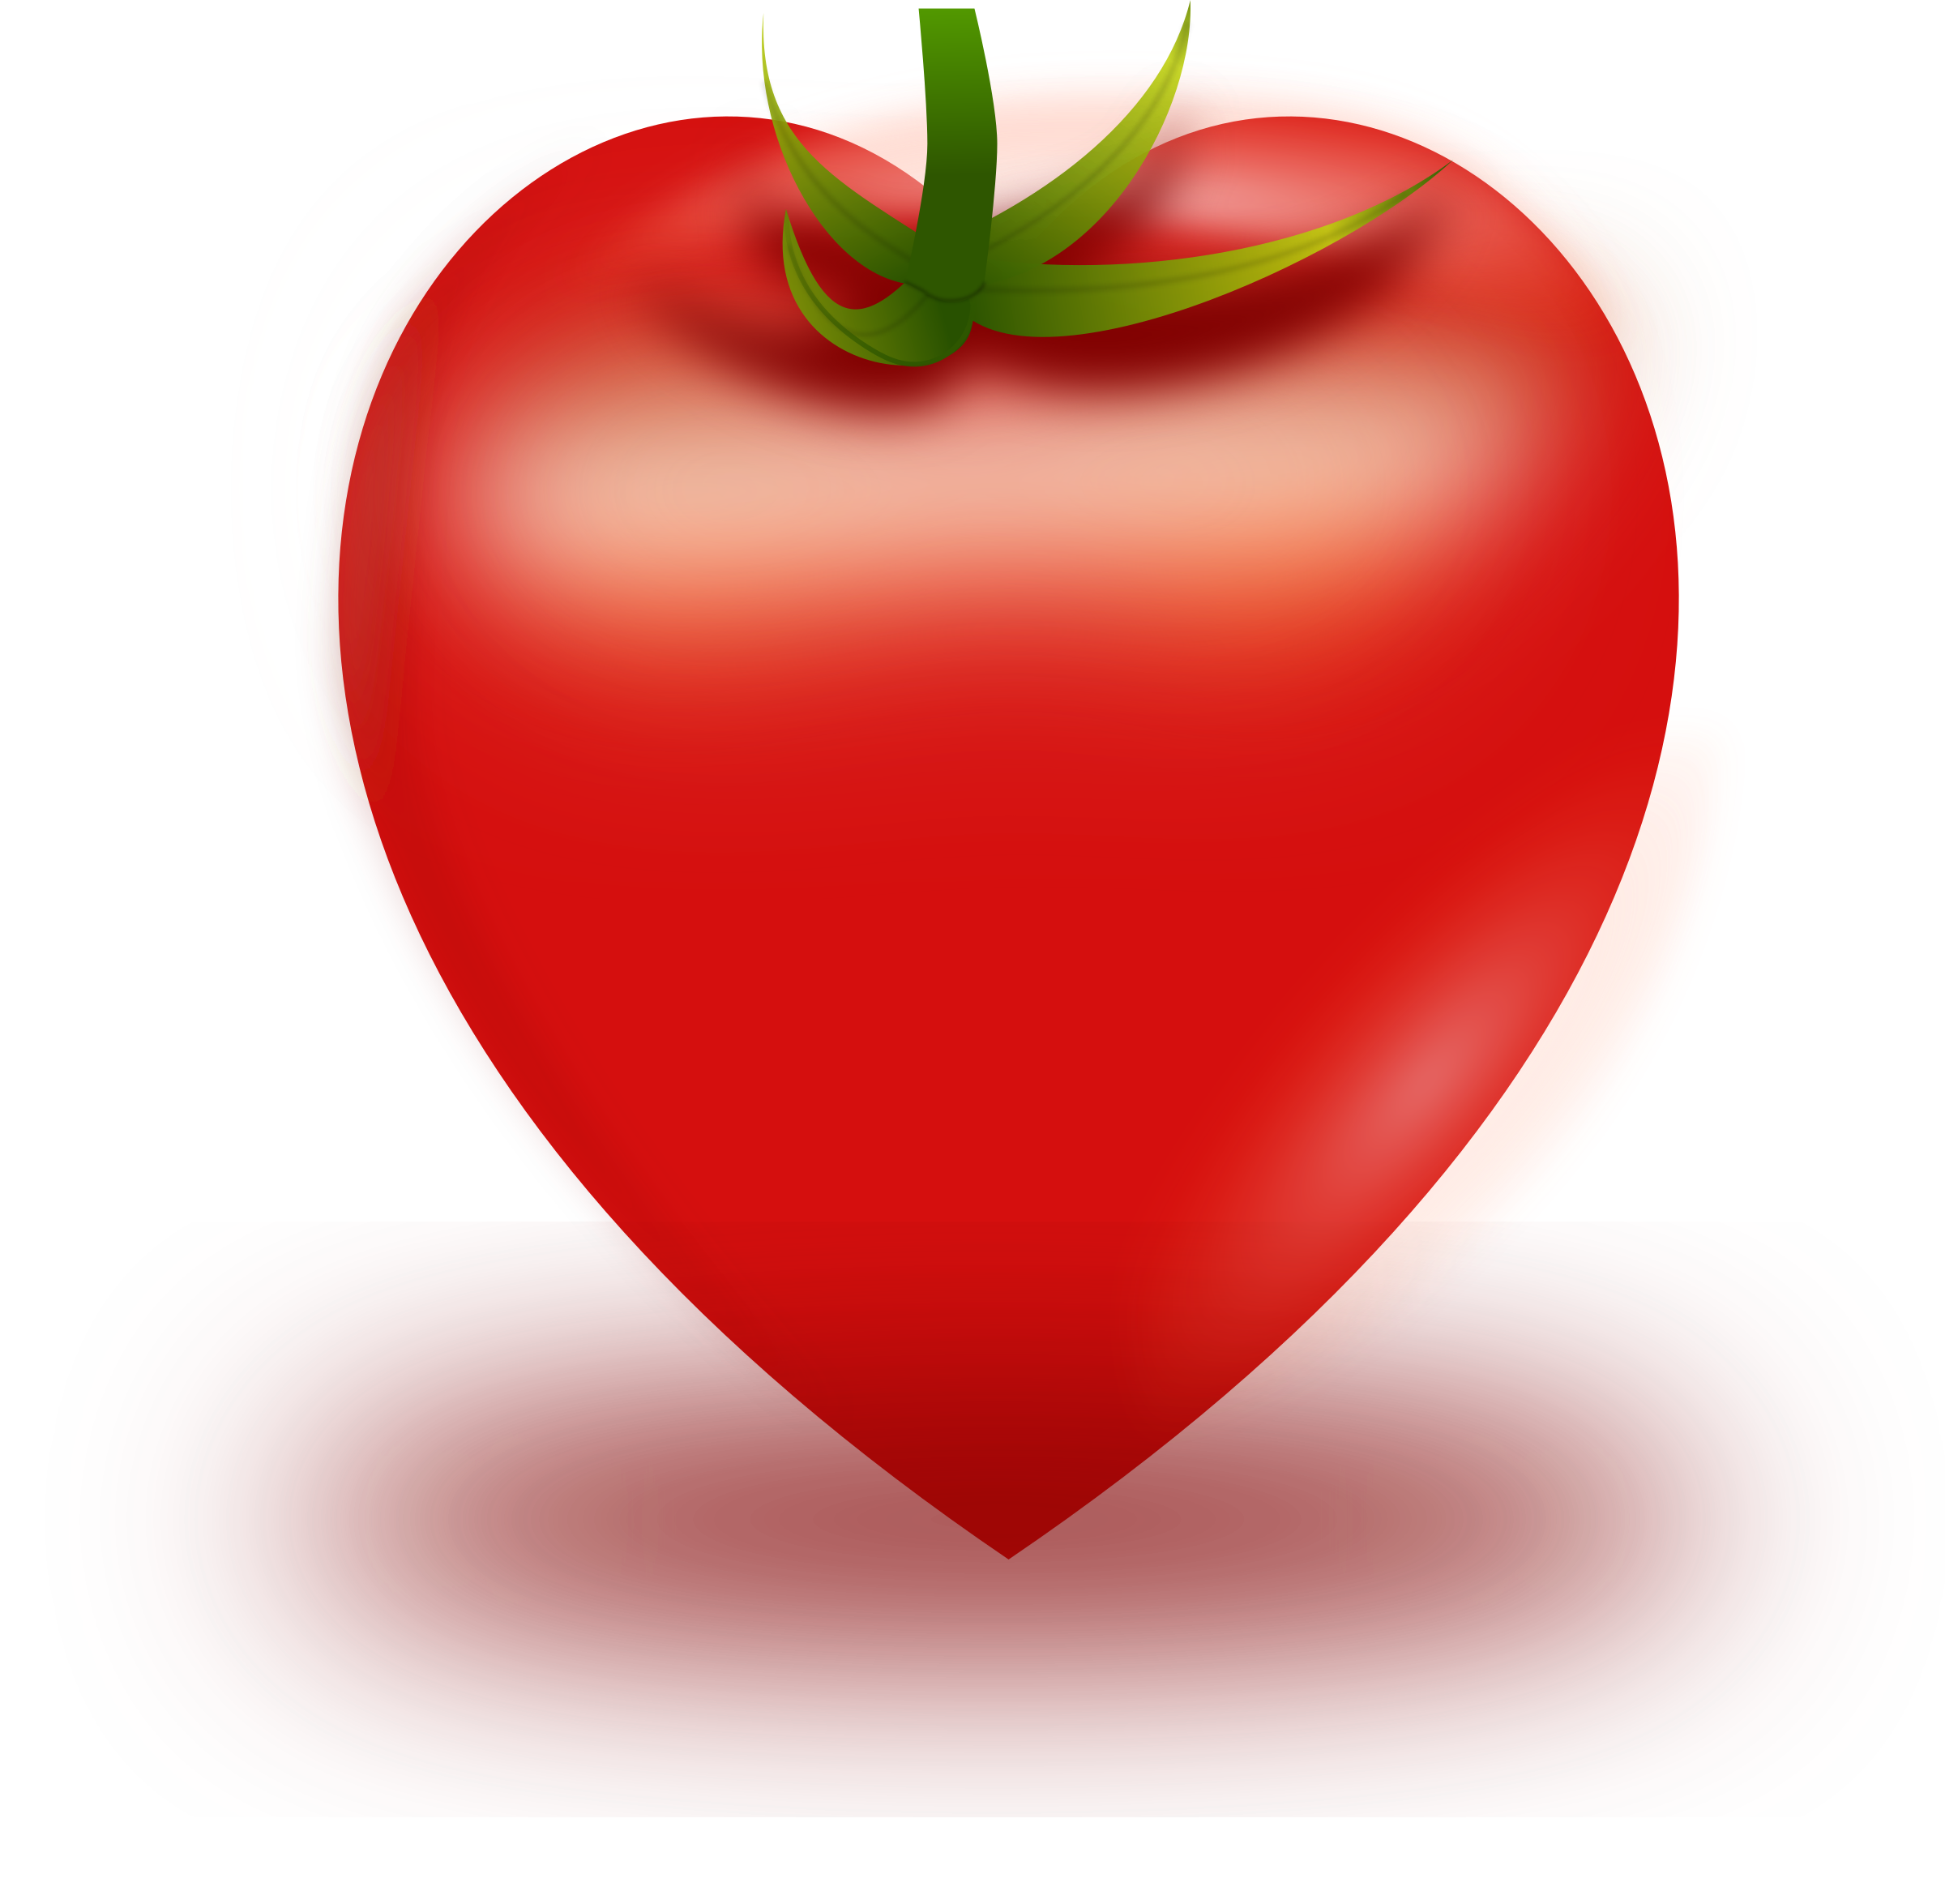 Vector heart clipart clipart library library Clipart - Vector Heart Tomato clipart library library